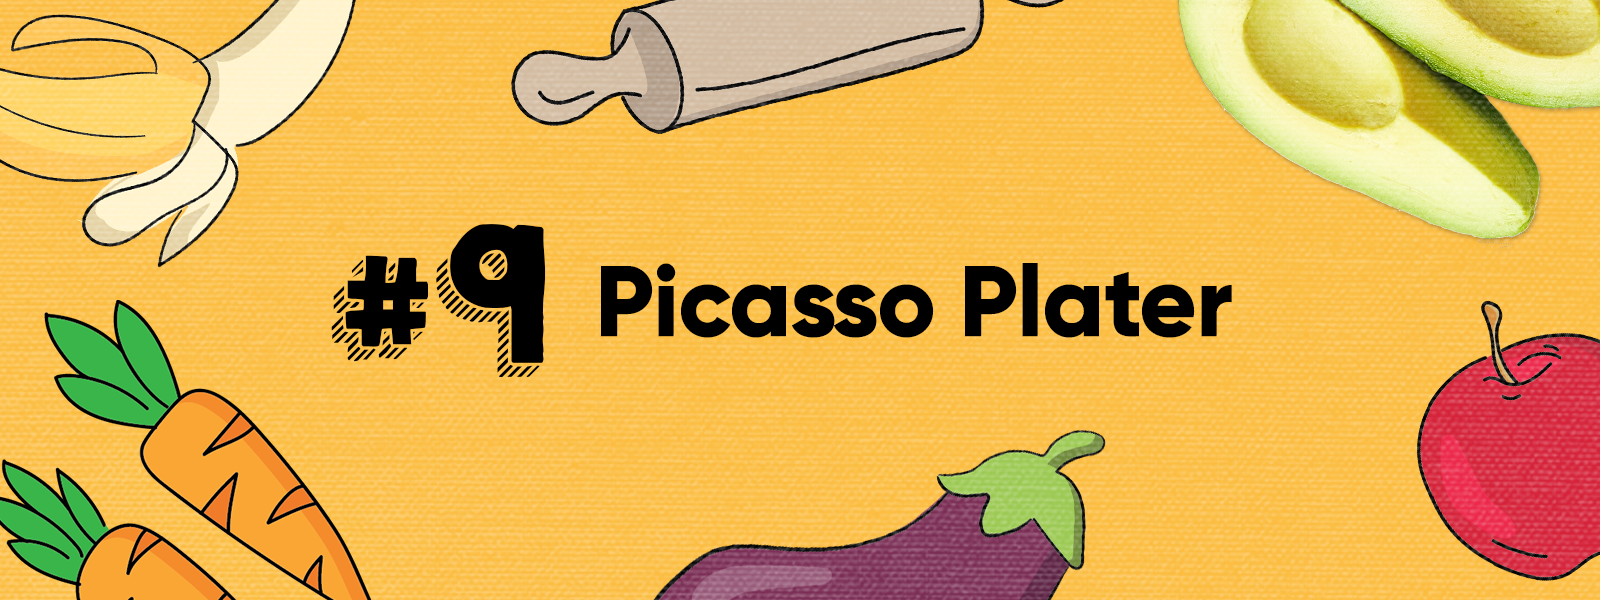 Skill 9: Picasso Plater